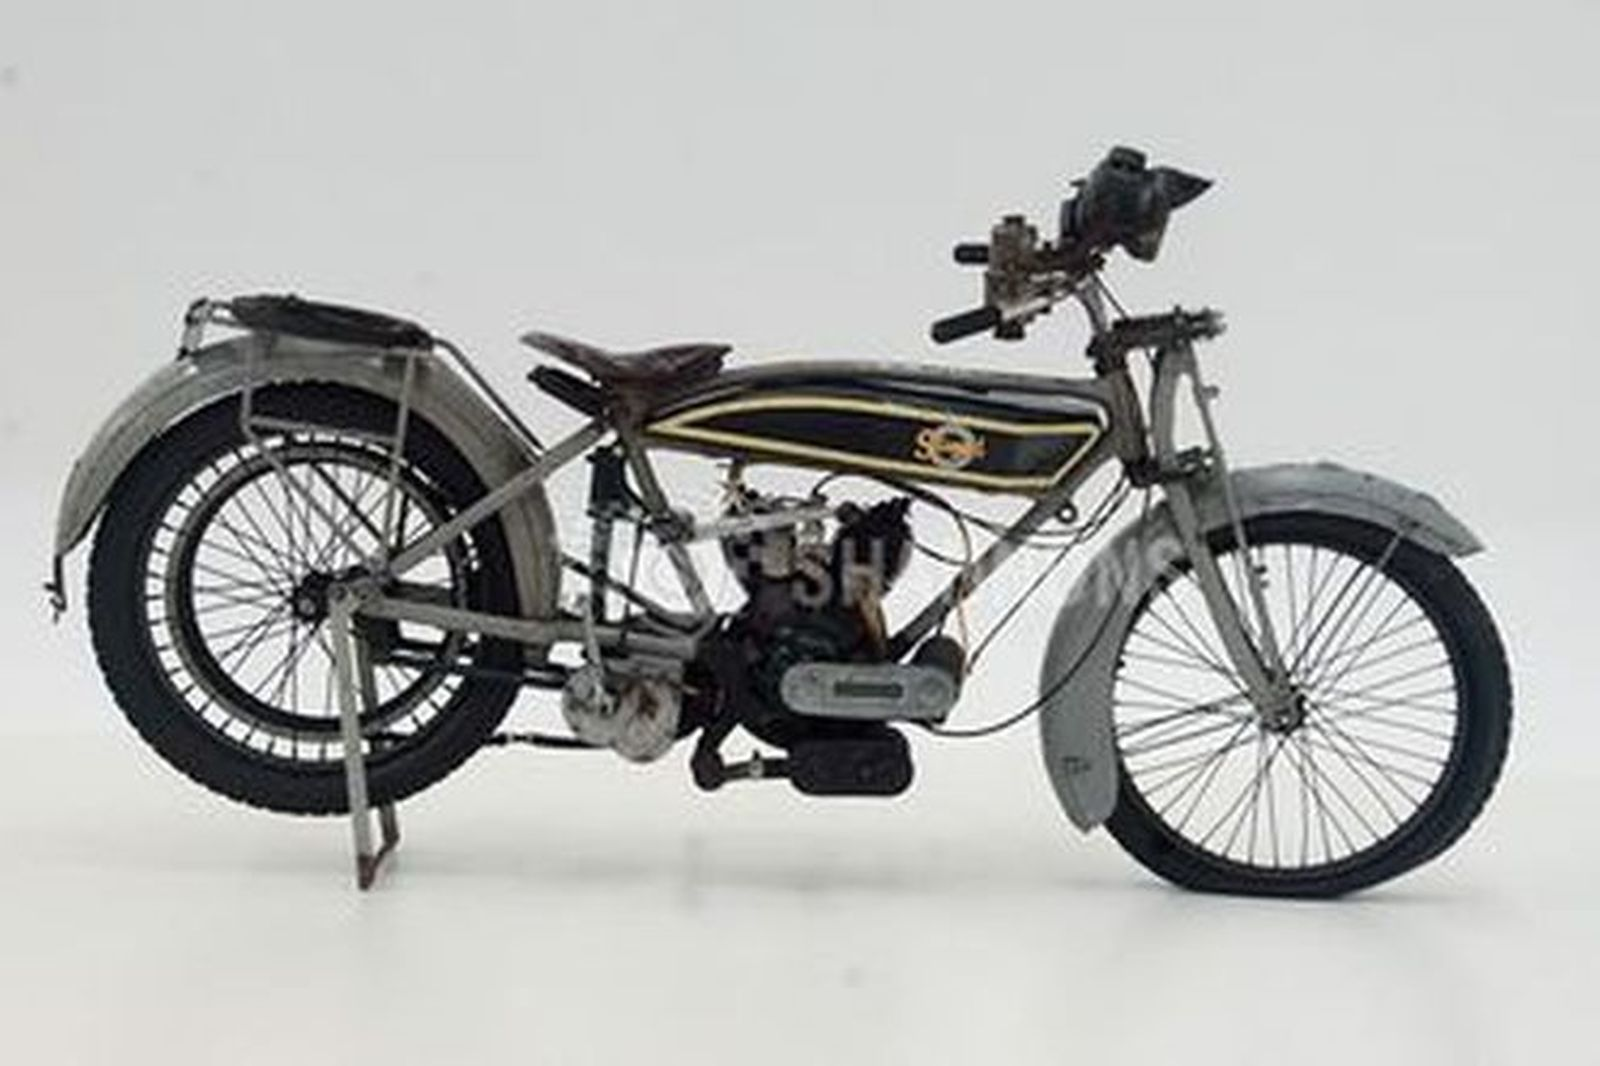 Stanger 538cc Two-Stroke V-Twin (Project)